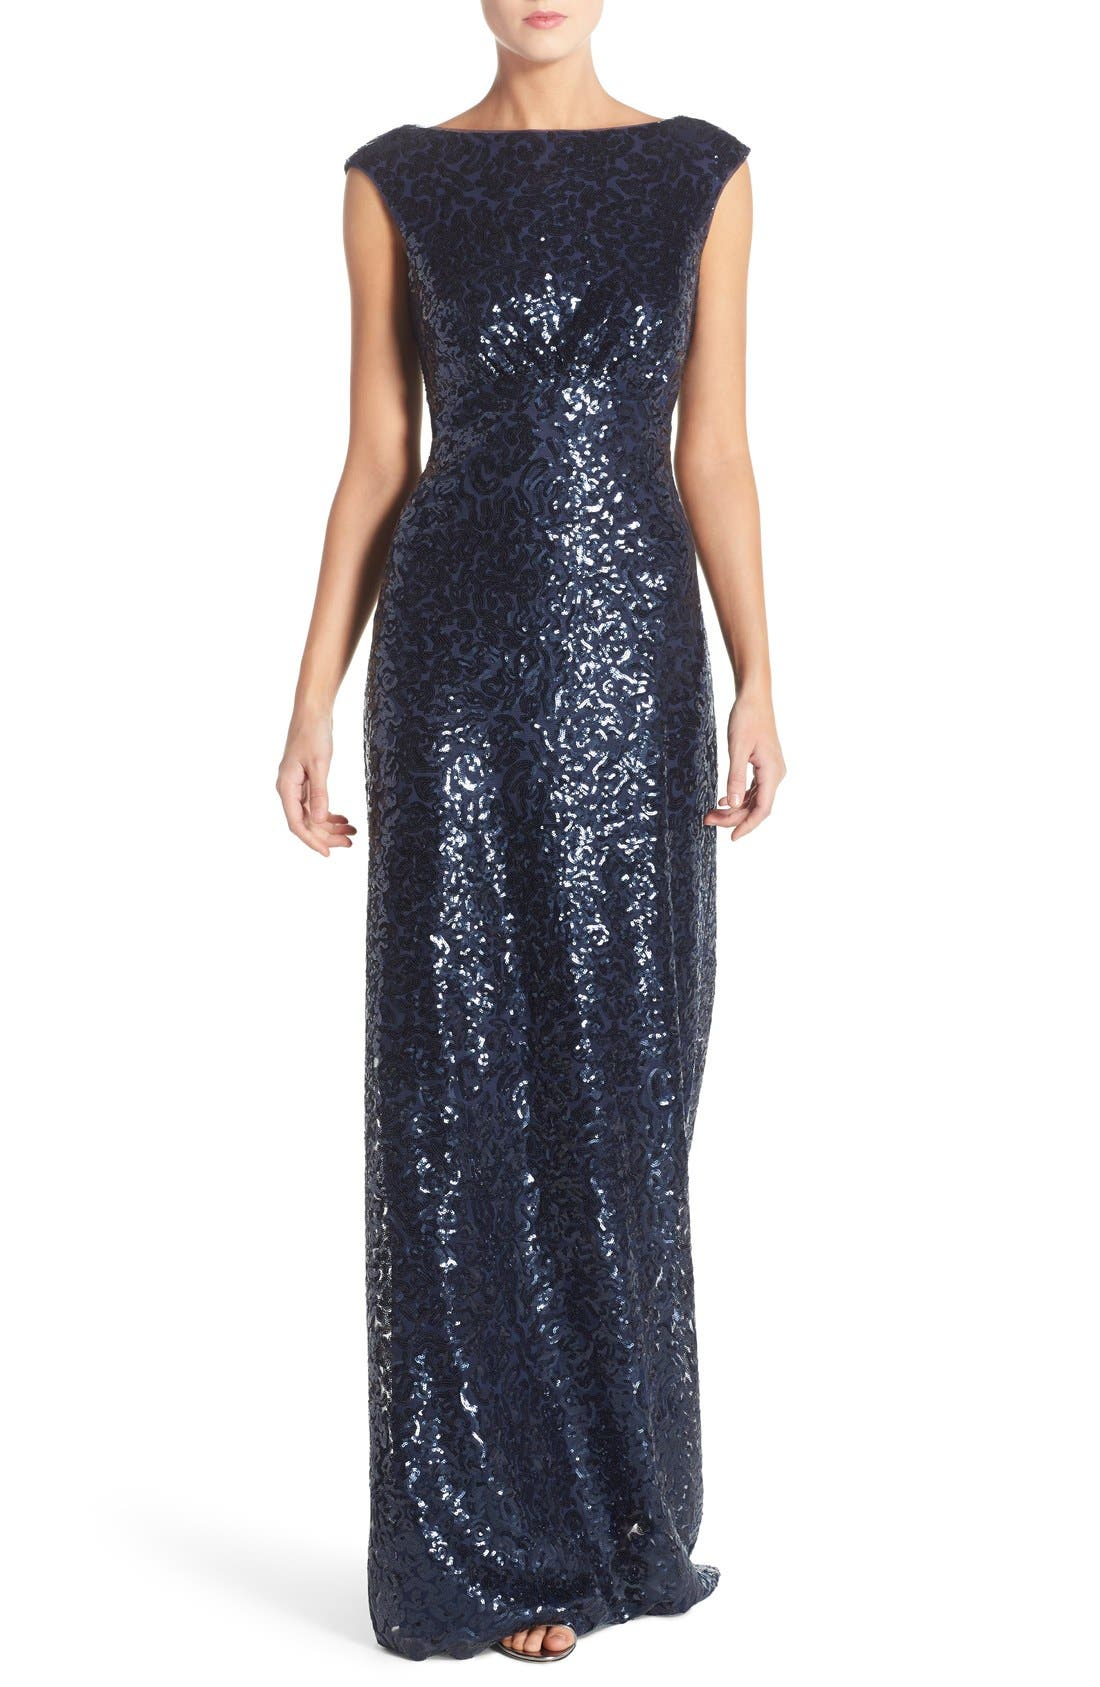 Main Image - Donna Morgan 'Evie' Sequin Bateau Neck A-Line Gown